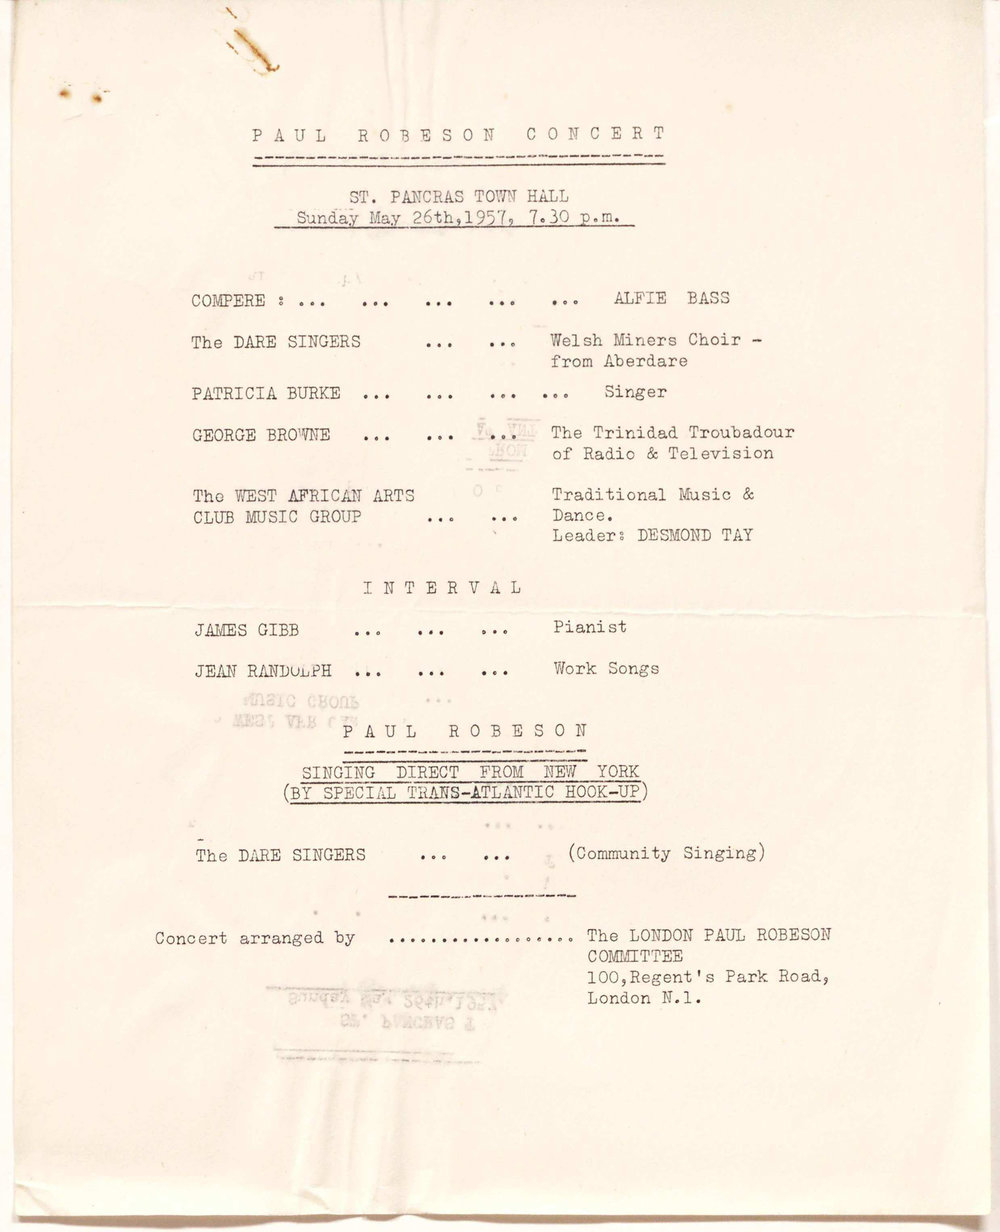 "Schedule for the Paul Robeson Concert at St Pancras Town Hall, 1957, including ""Paul Robeson singing direct from New York (by special Trans-Atlantic hook-up)"".  Reproduced by permission of Modern Records Centre, University of Warwick. Included in the papers of Clive Jenkins: document reference  MSS.79/6/CJ/3/110"